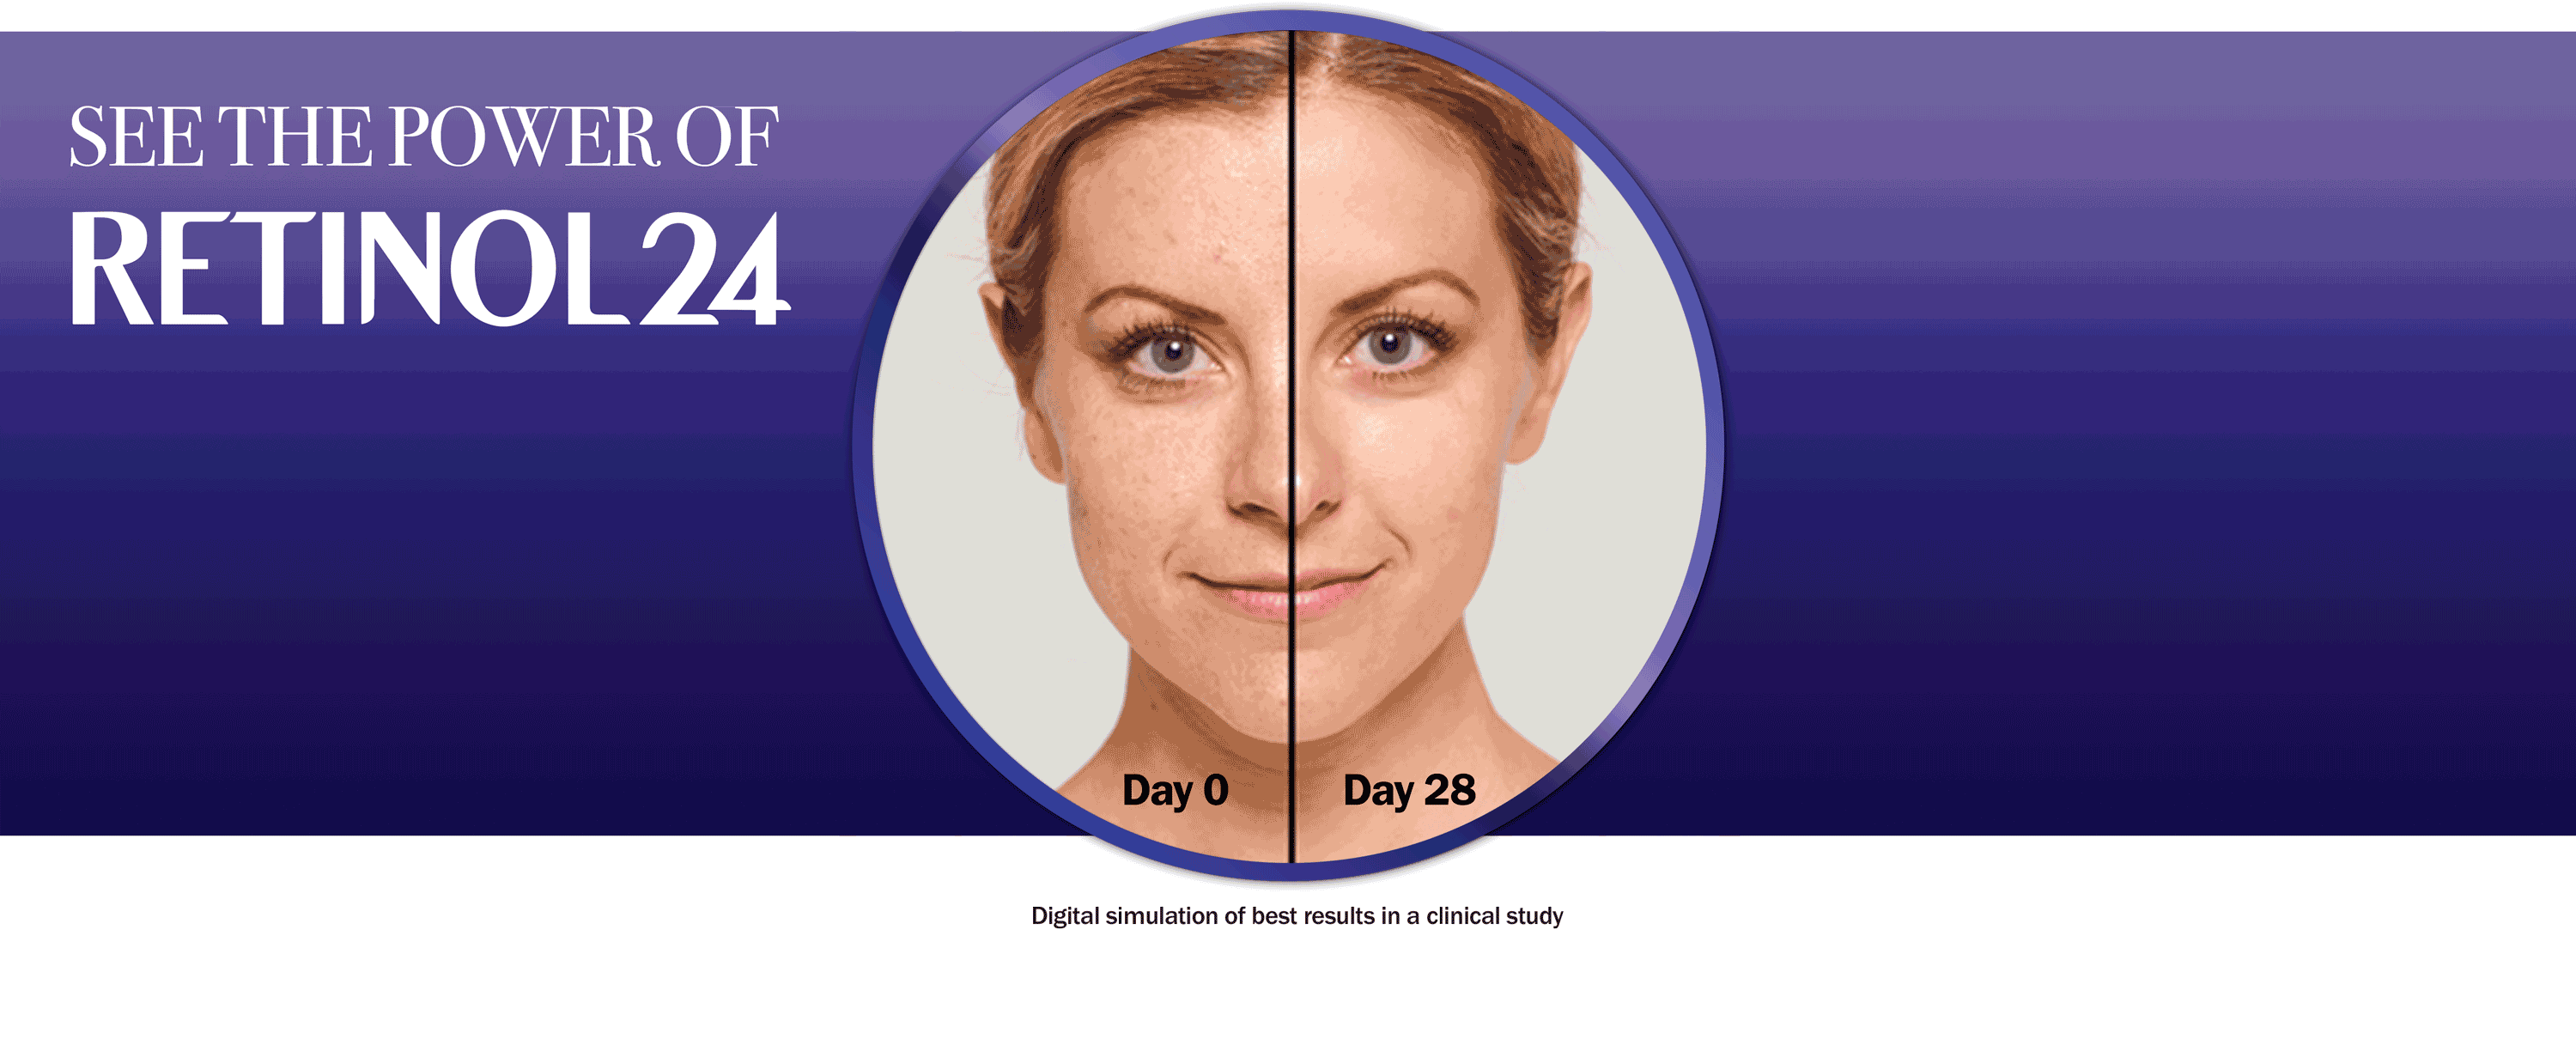 see the power of retinol 24 img